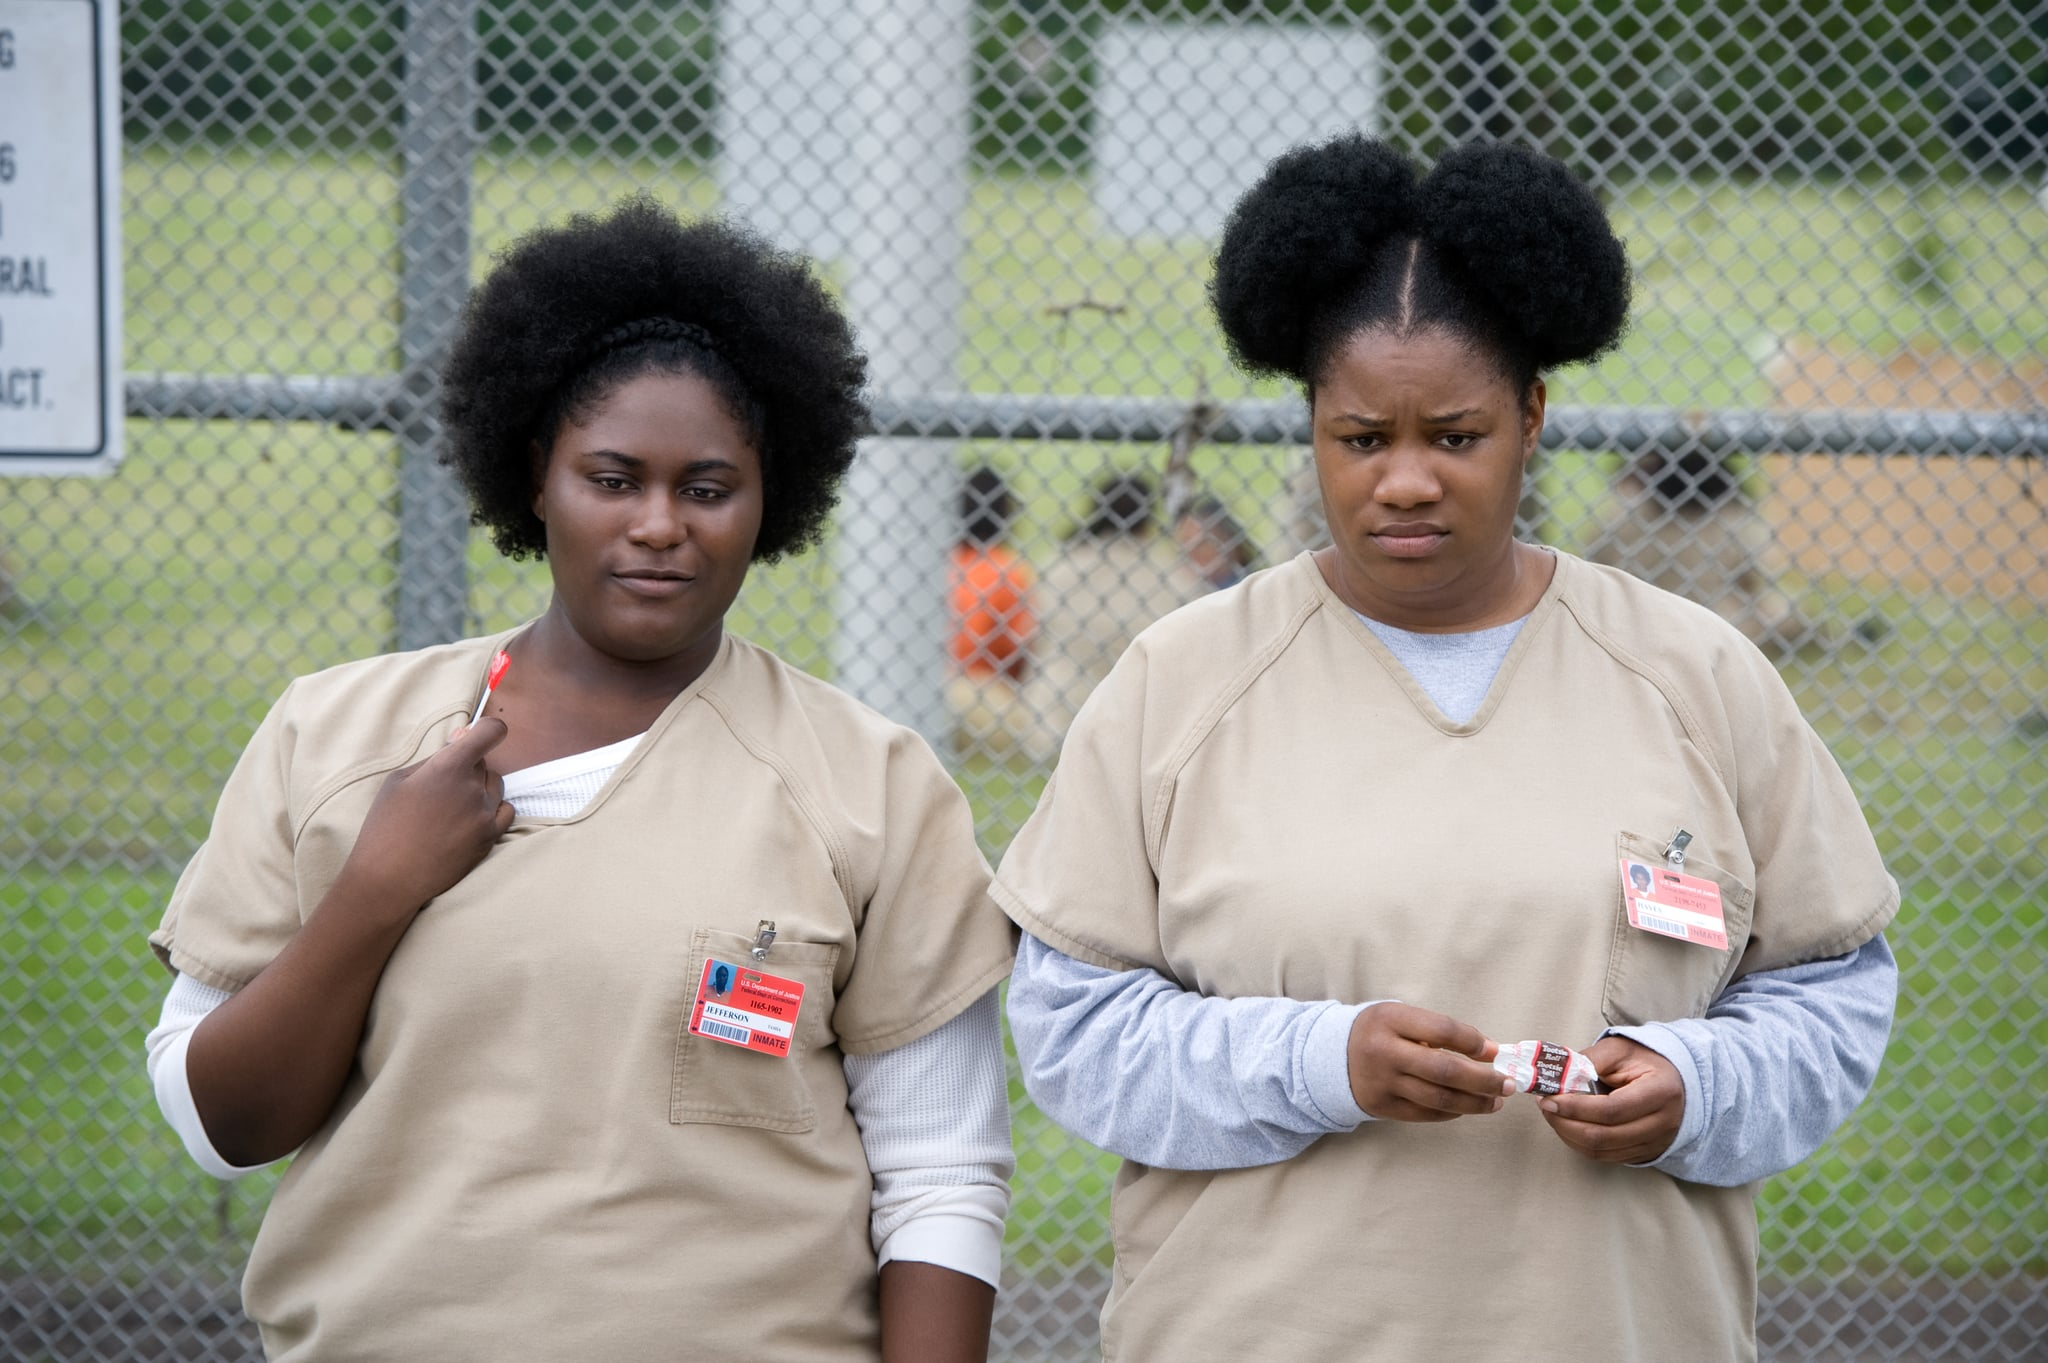 ORANGE IS THE NEW BLACK, (from left): Danielle Brooks, Adrienne C. Moore, 'Mother's Day', (Season 3, ep. 301, aired June 12, 2015). photo: JoJo Whilden / Netflix / courtesy Everett Collection